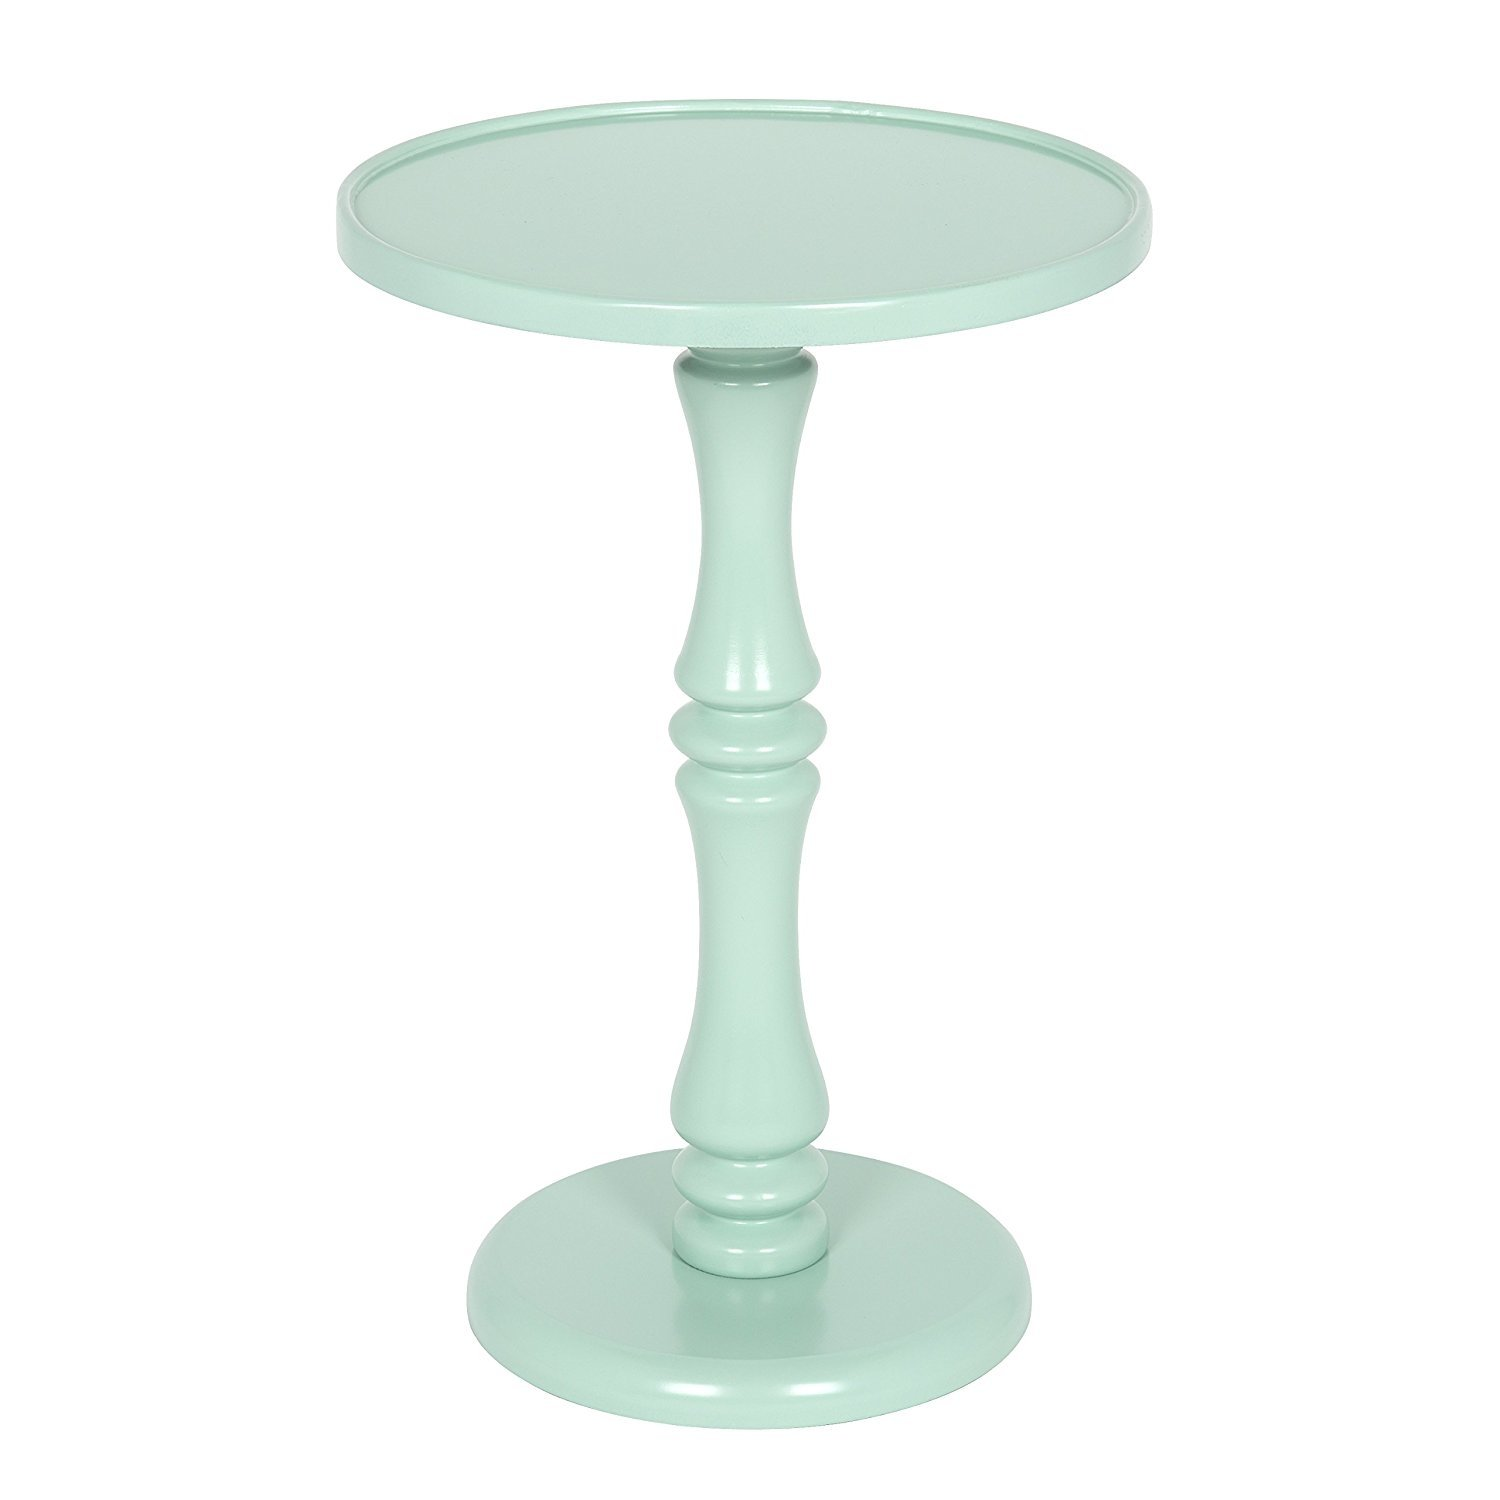 charming round accent table pedestal tall end oak antique unfinished bedside distressed small diy large tables wood full size counter chairs buffet lamps cabinet with drawers